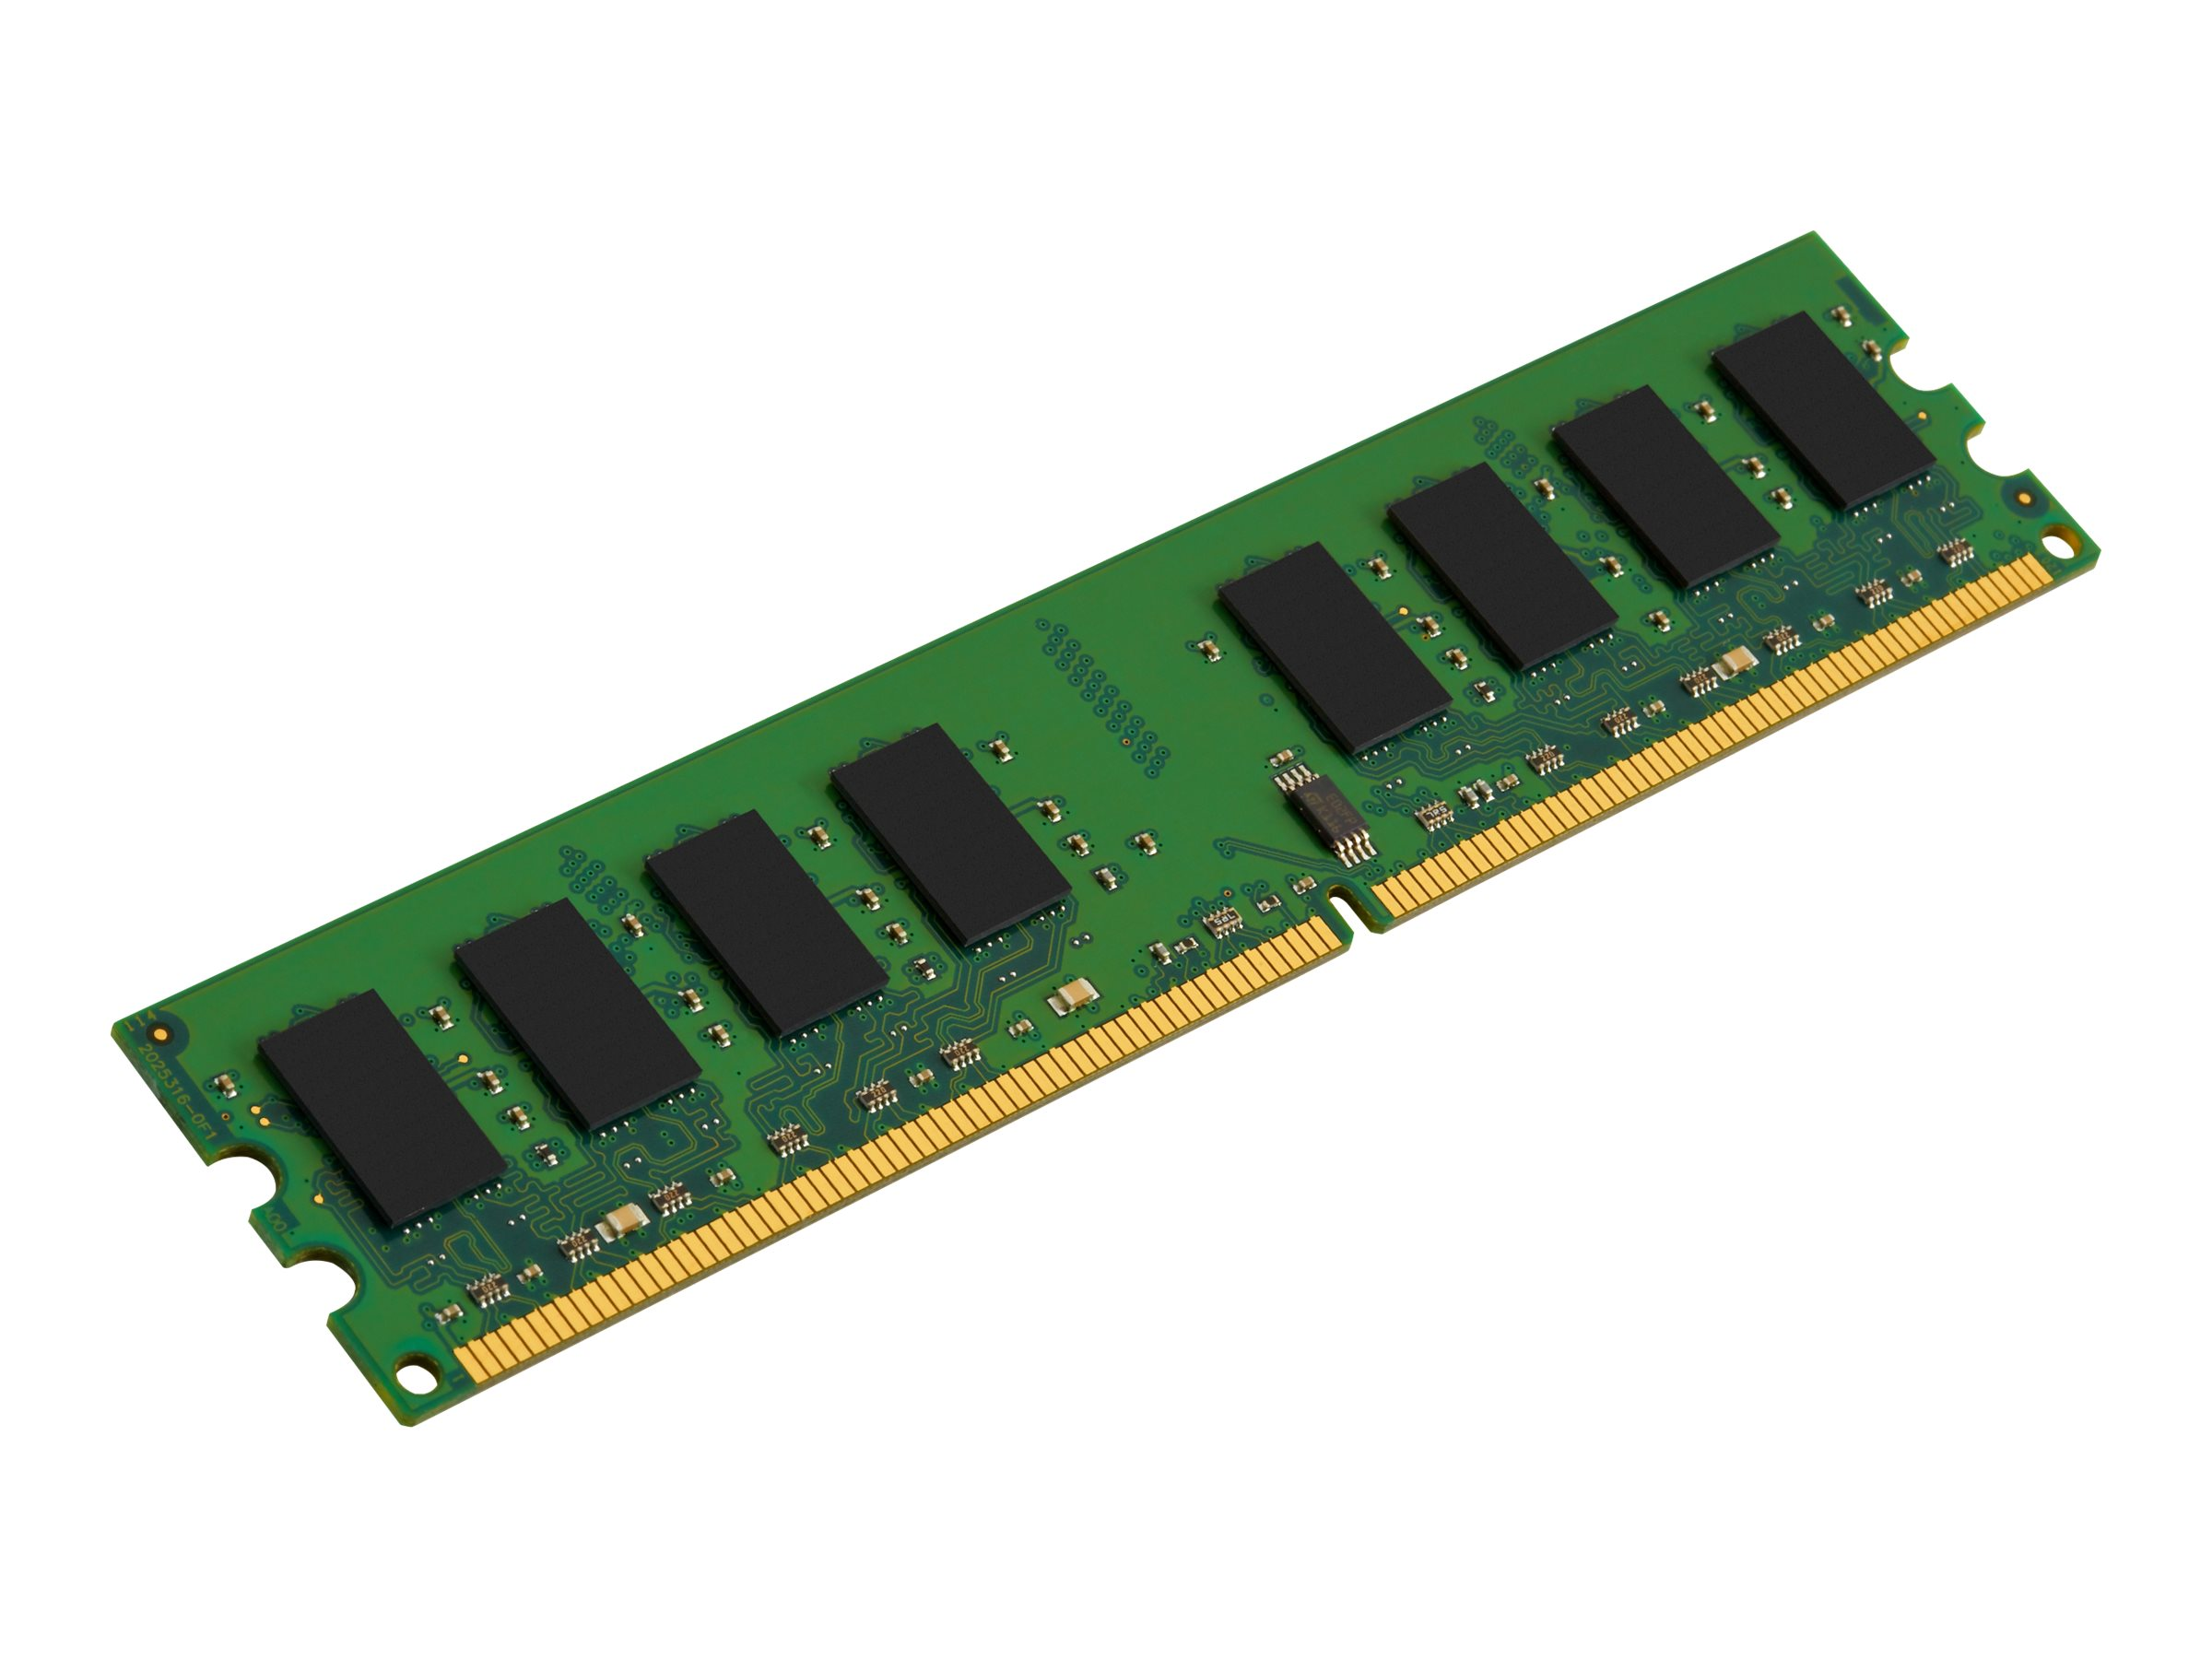 Kingston - DDR2 - 2 GB - DIMM 240-PIN - 667 MHz / PC2-5300 - 1.8 V